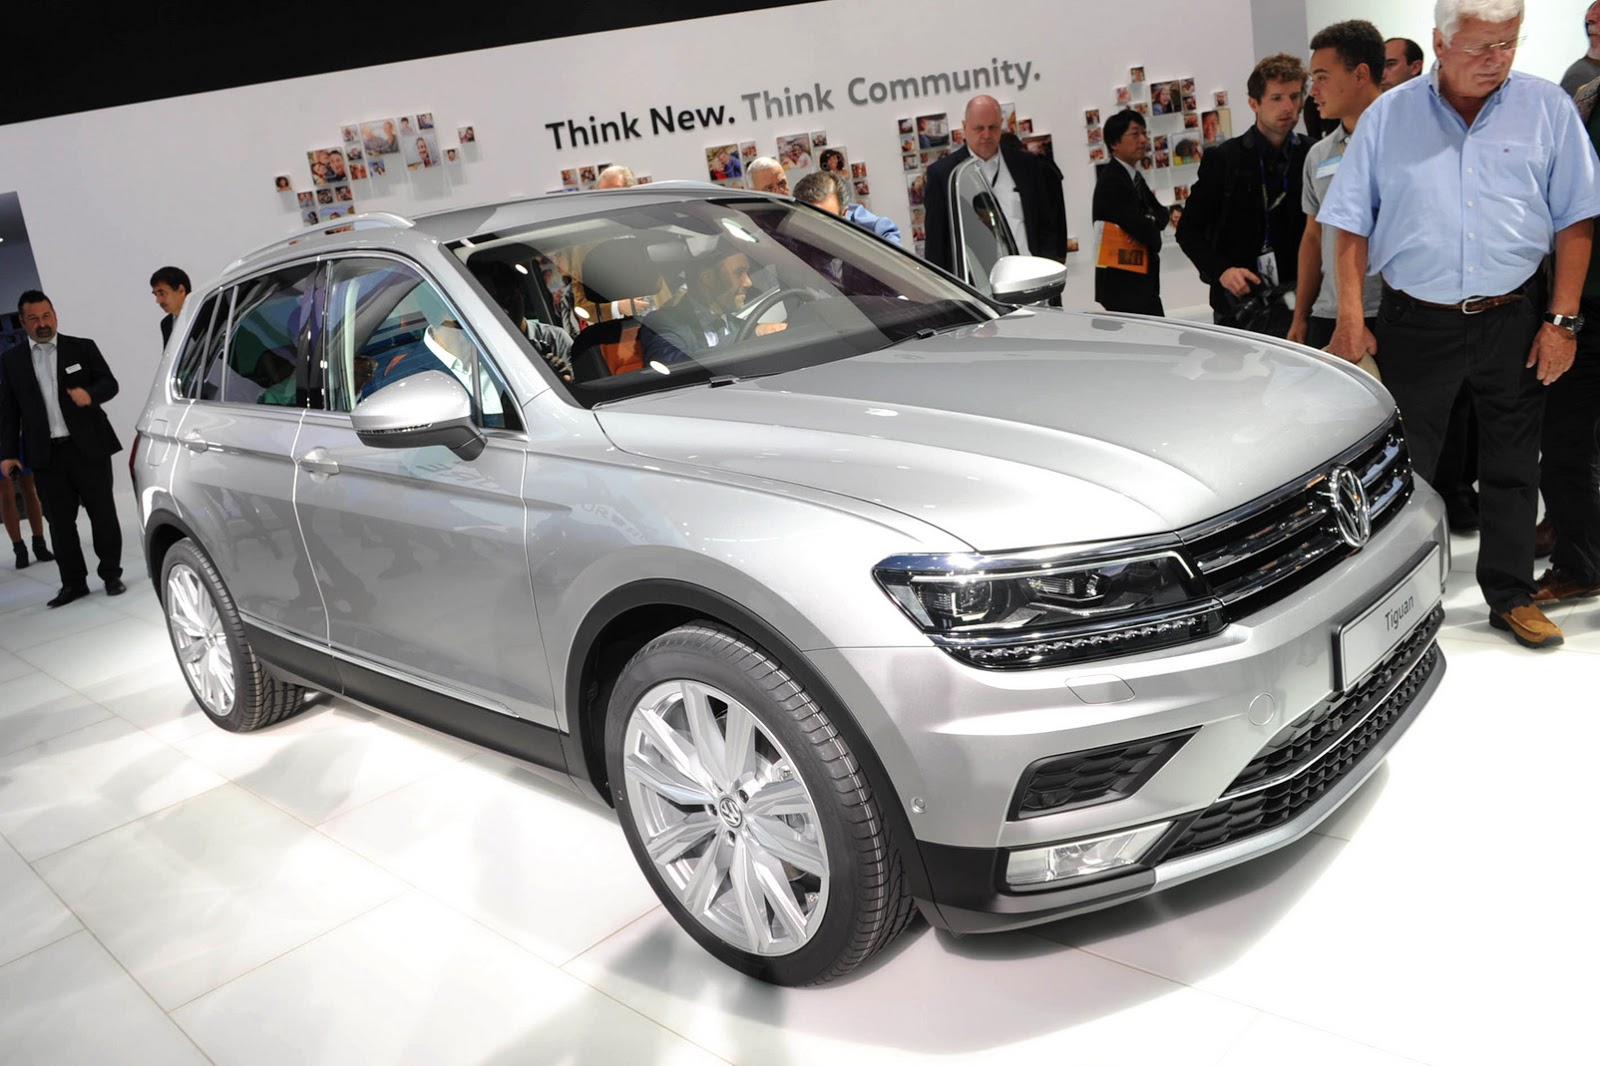 New Volkswagen Tiguan Promises To Be Better In Every Way